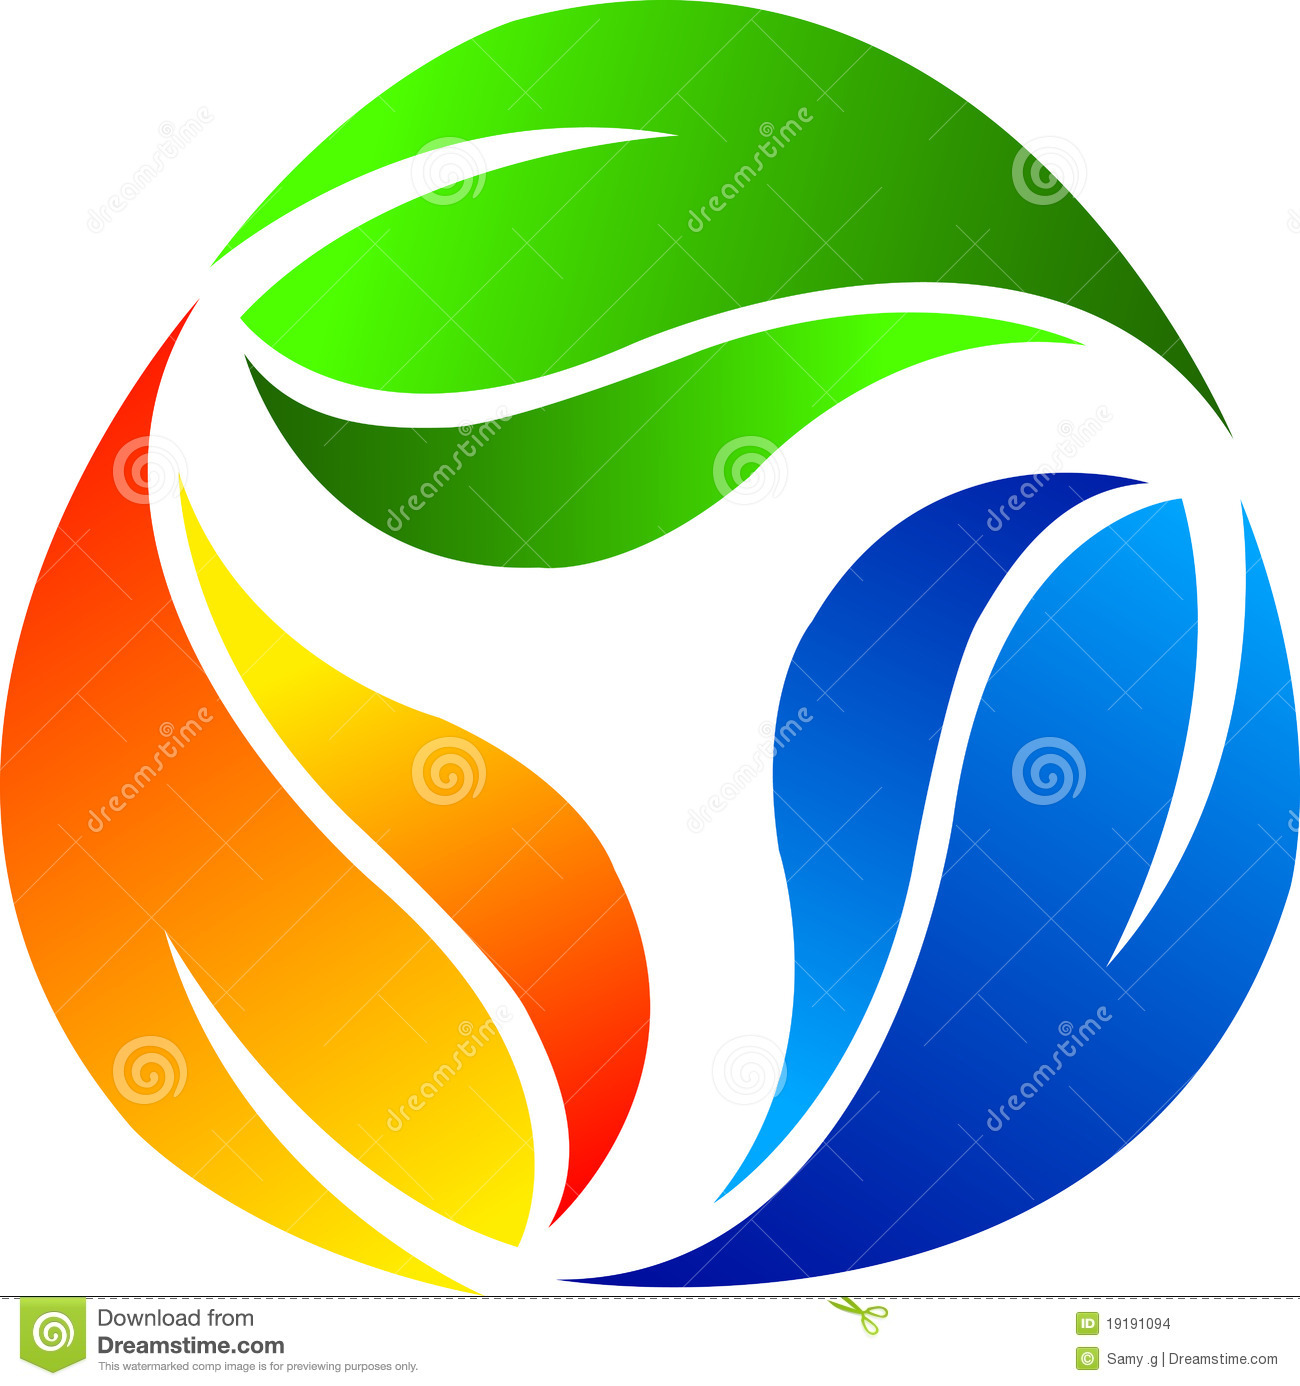 Leaf logo stock vector. Image of abstract, corporate ...